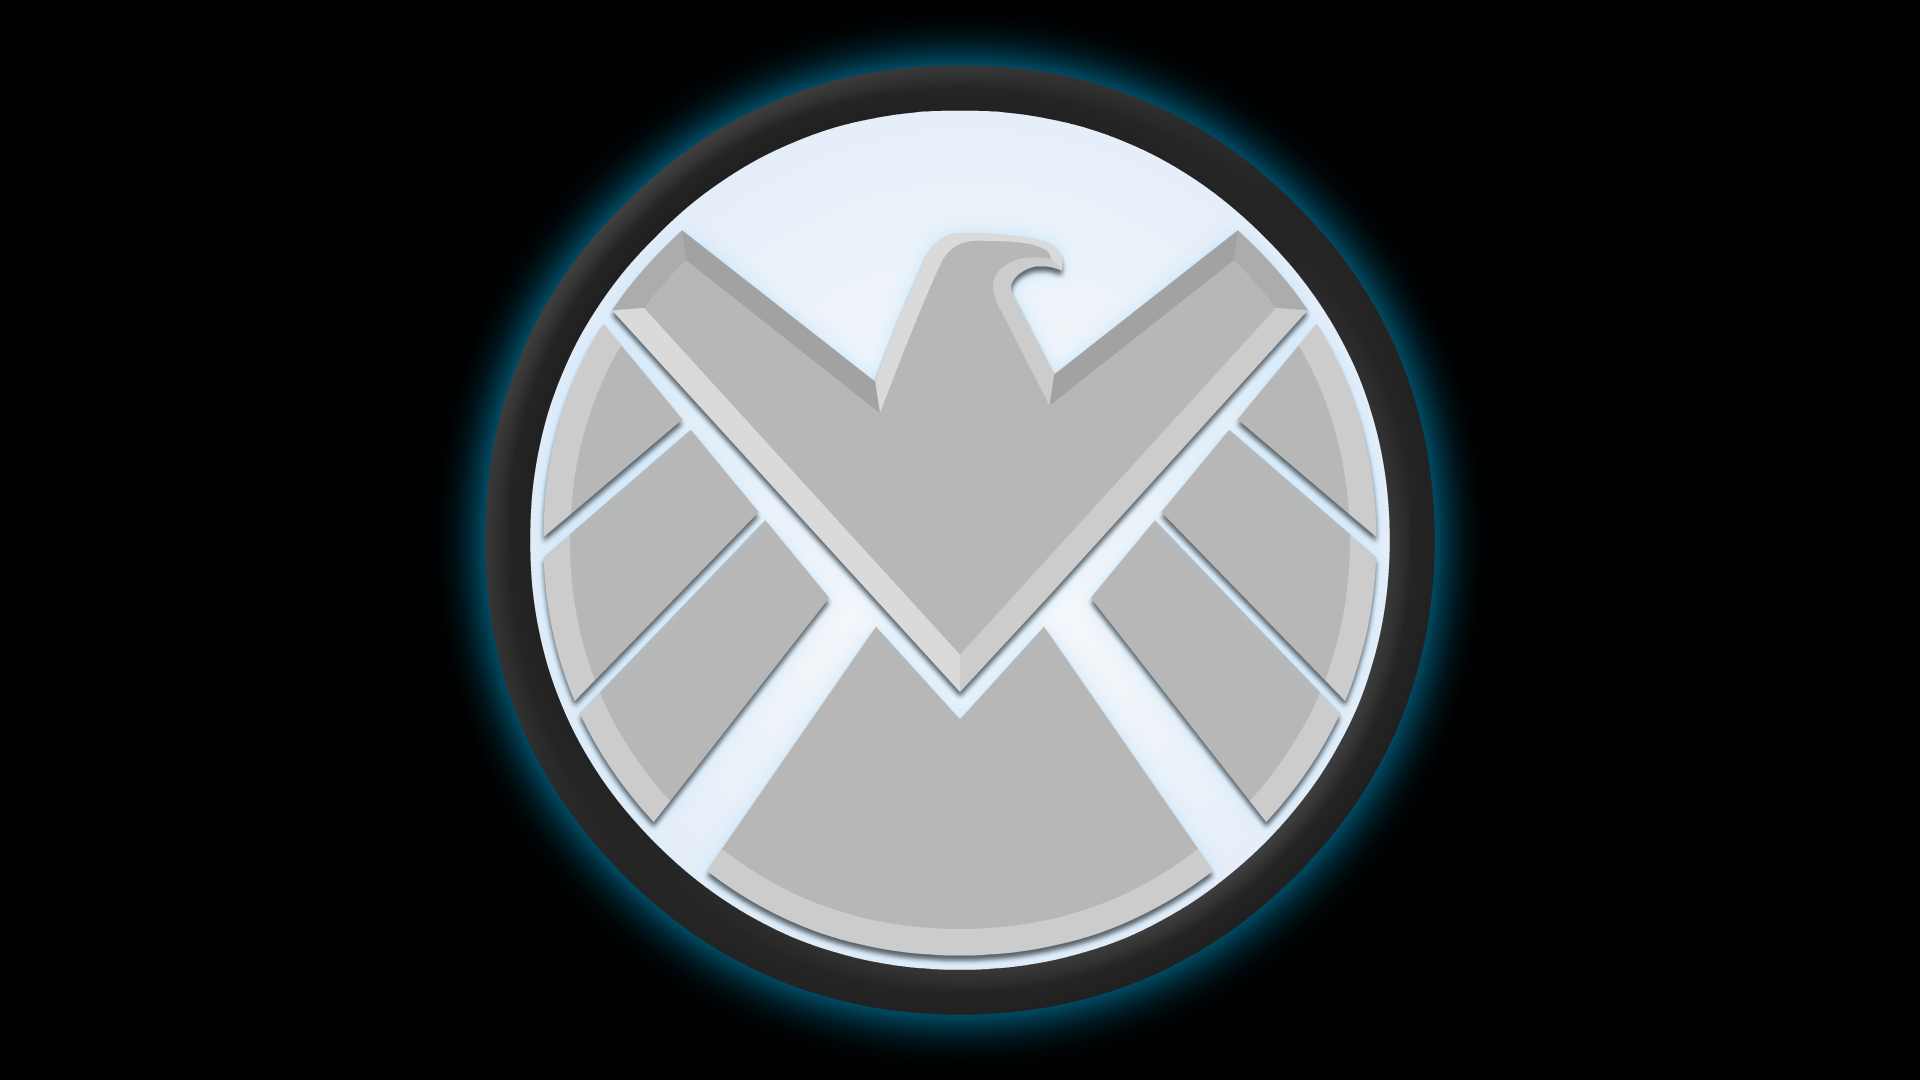 Agents Of S H I E L D Symbol By Yurtigo On Deviantart